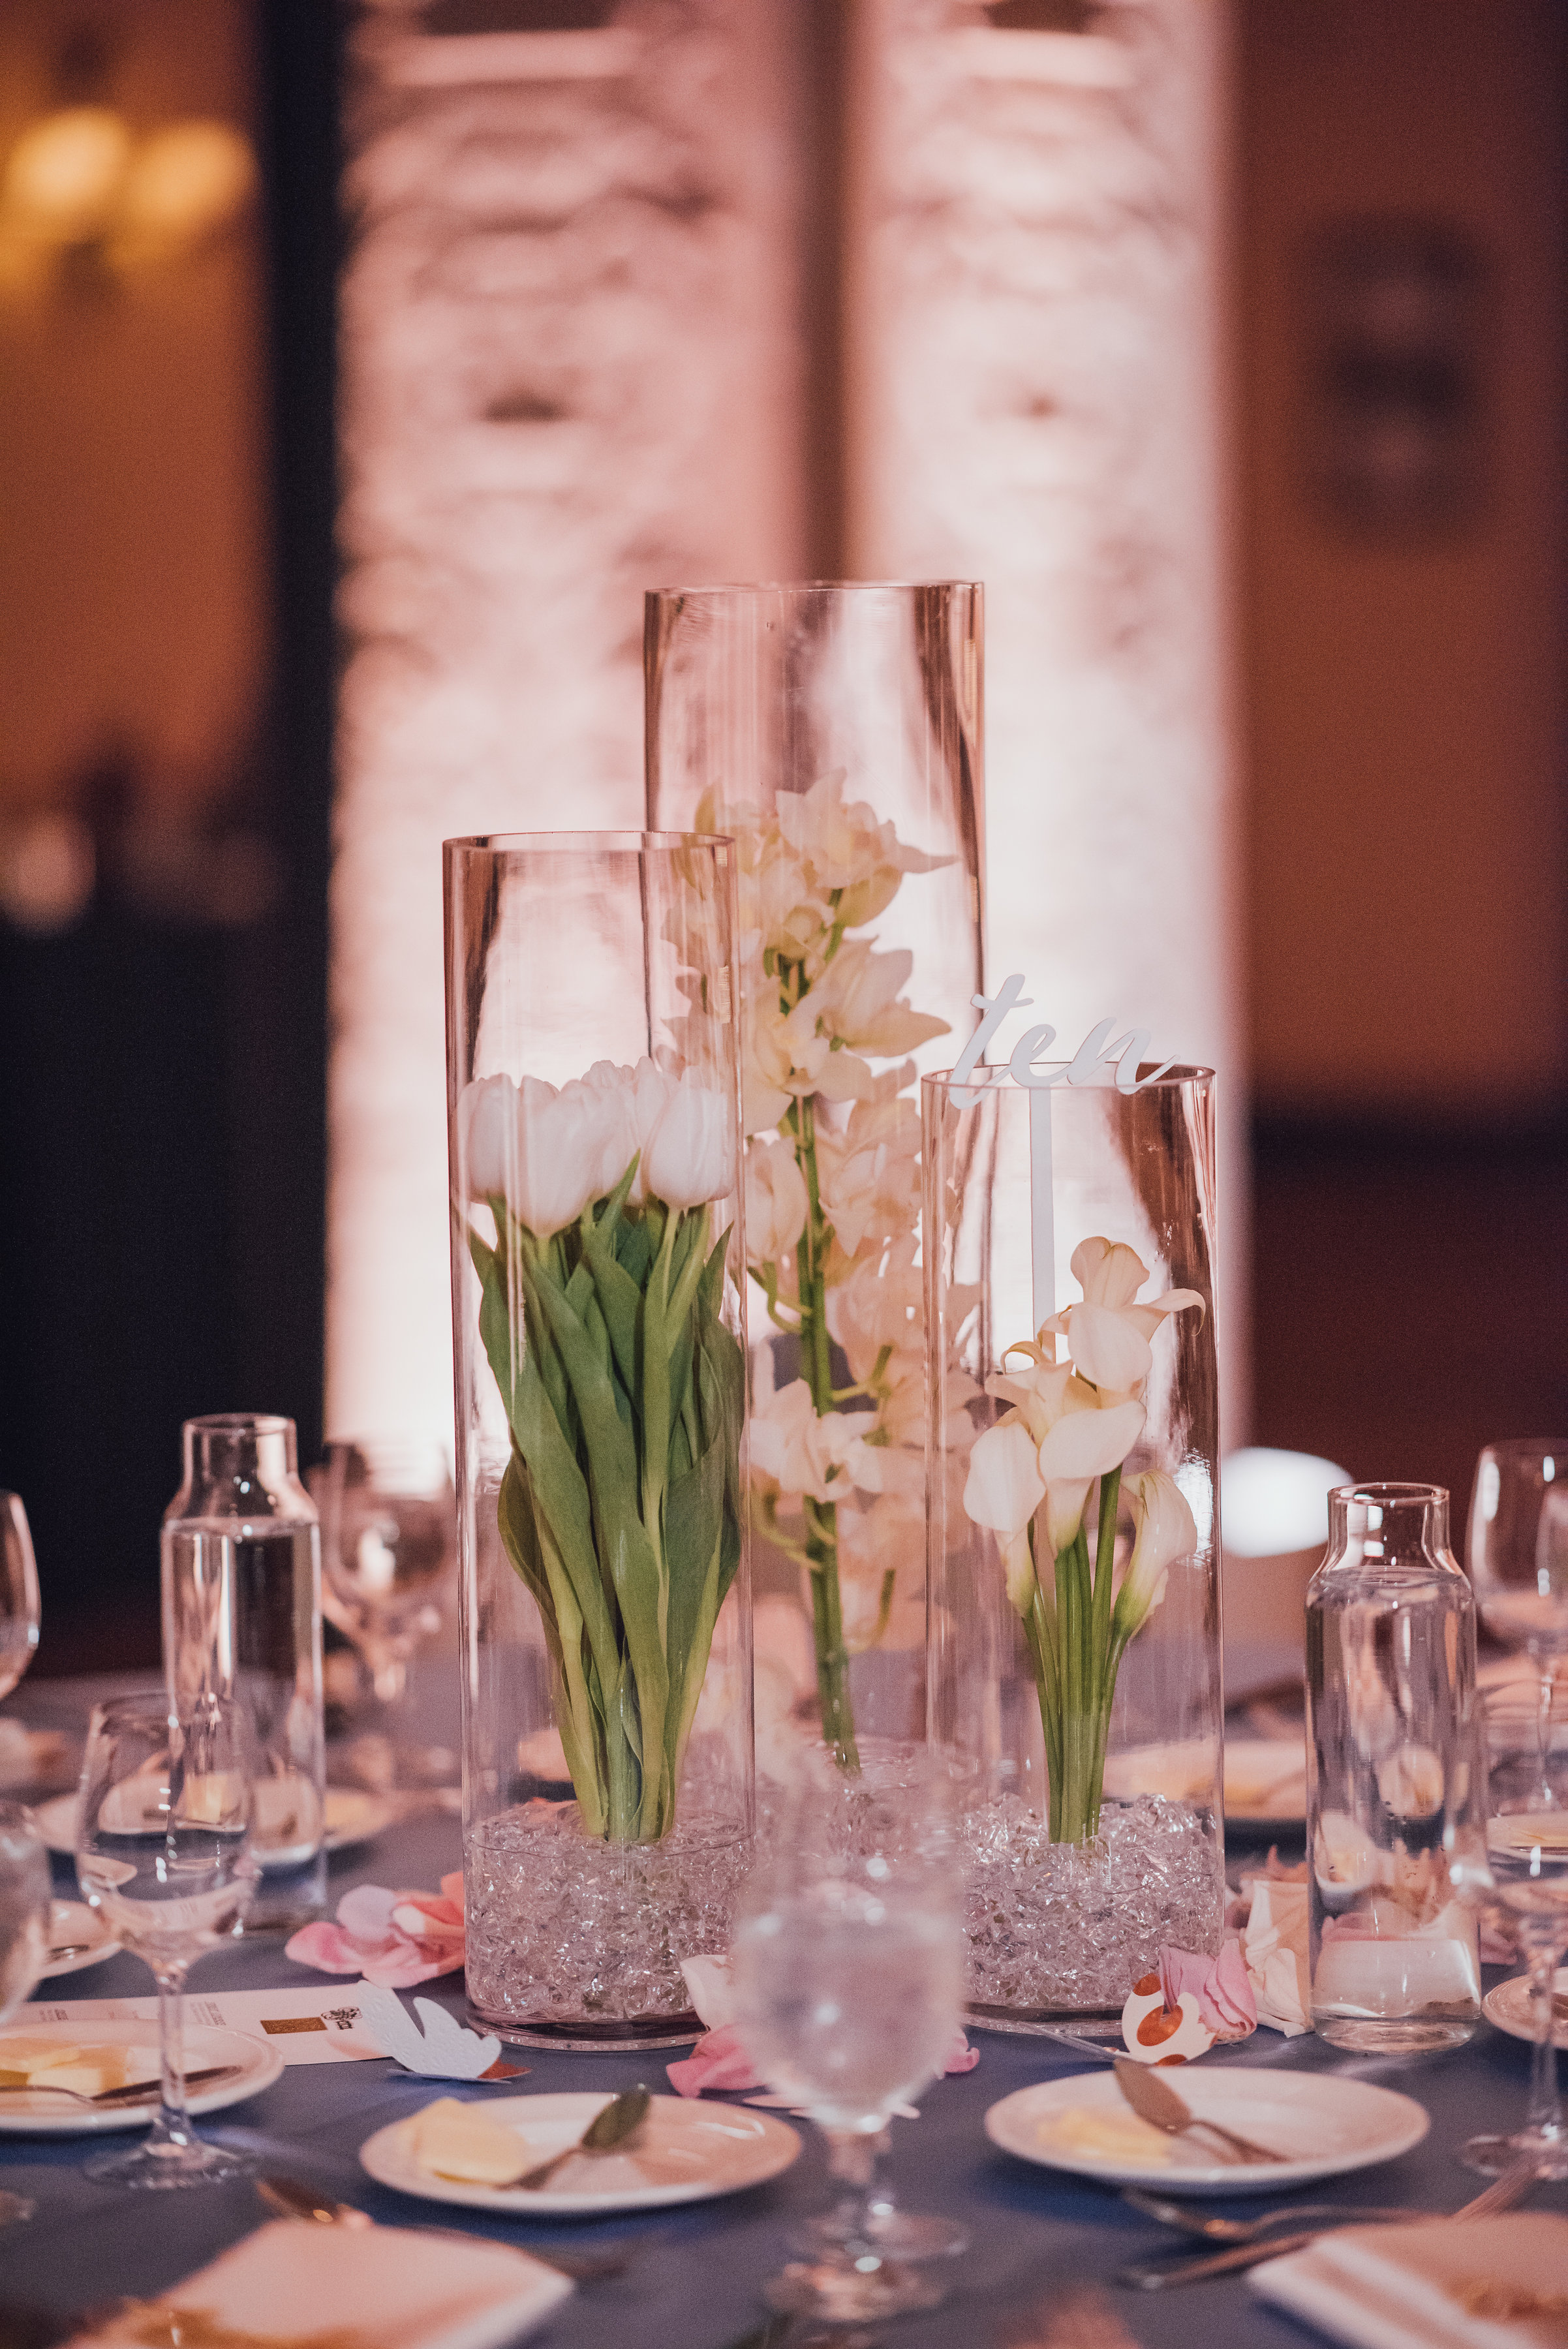 krystal and ananth wedding with cluster events centerpiece.JPG